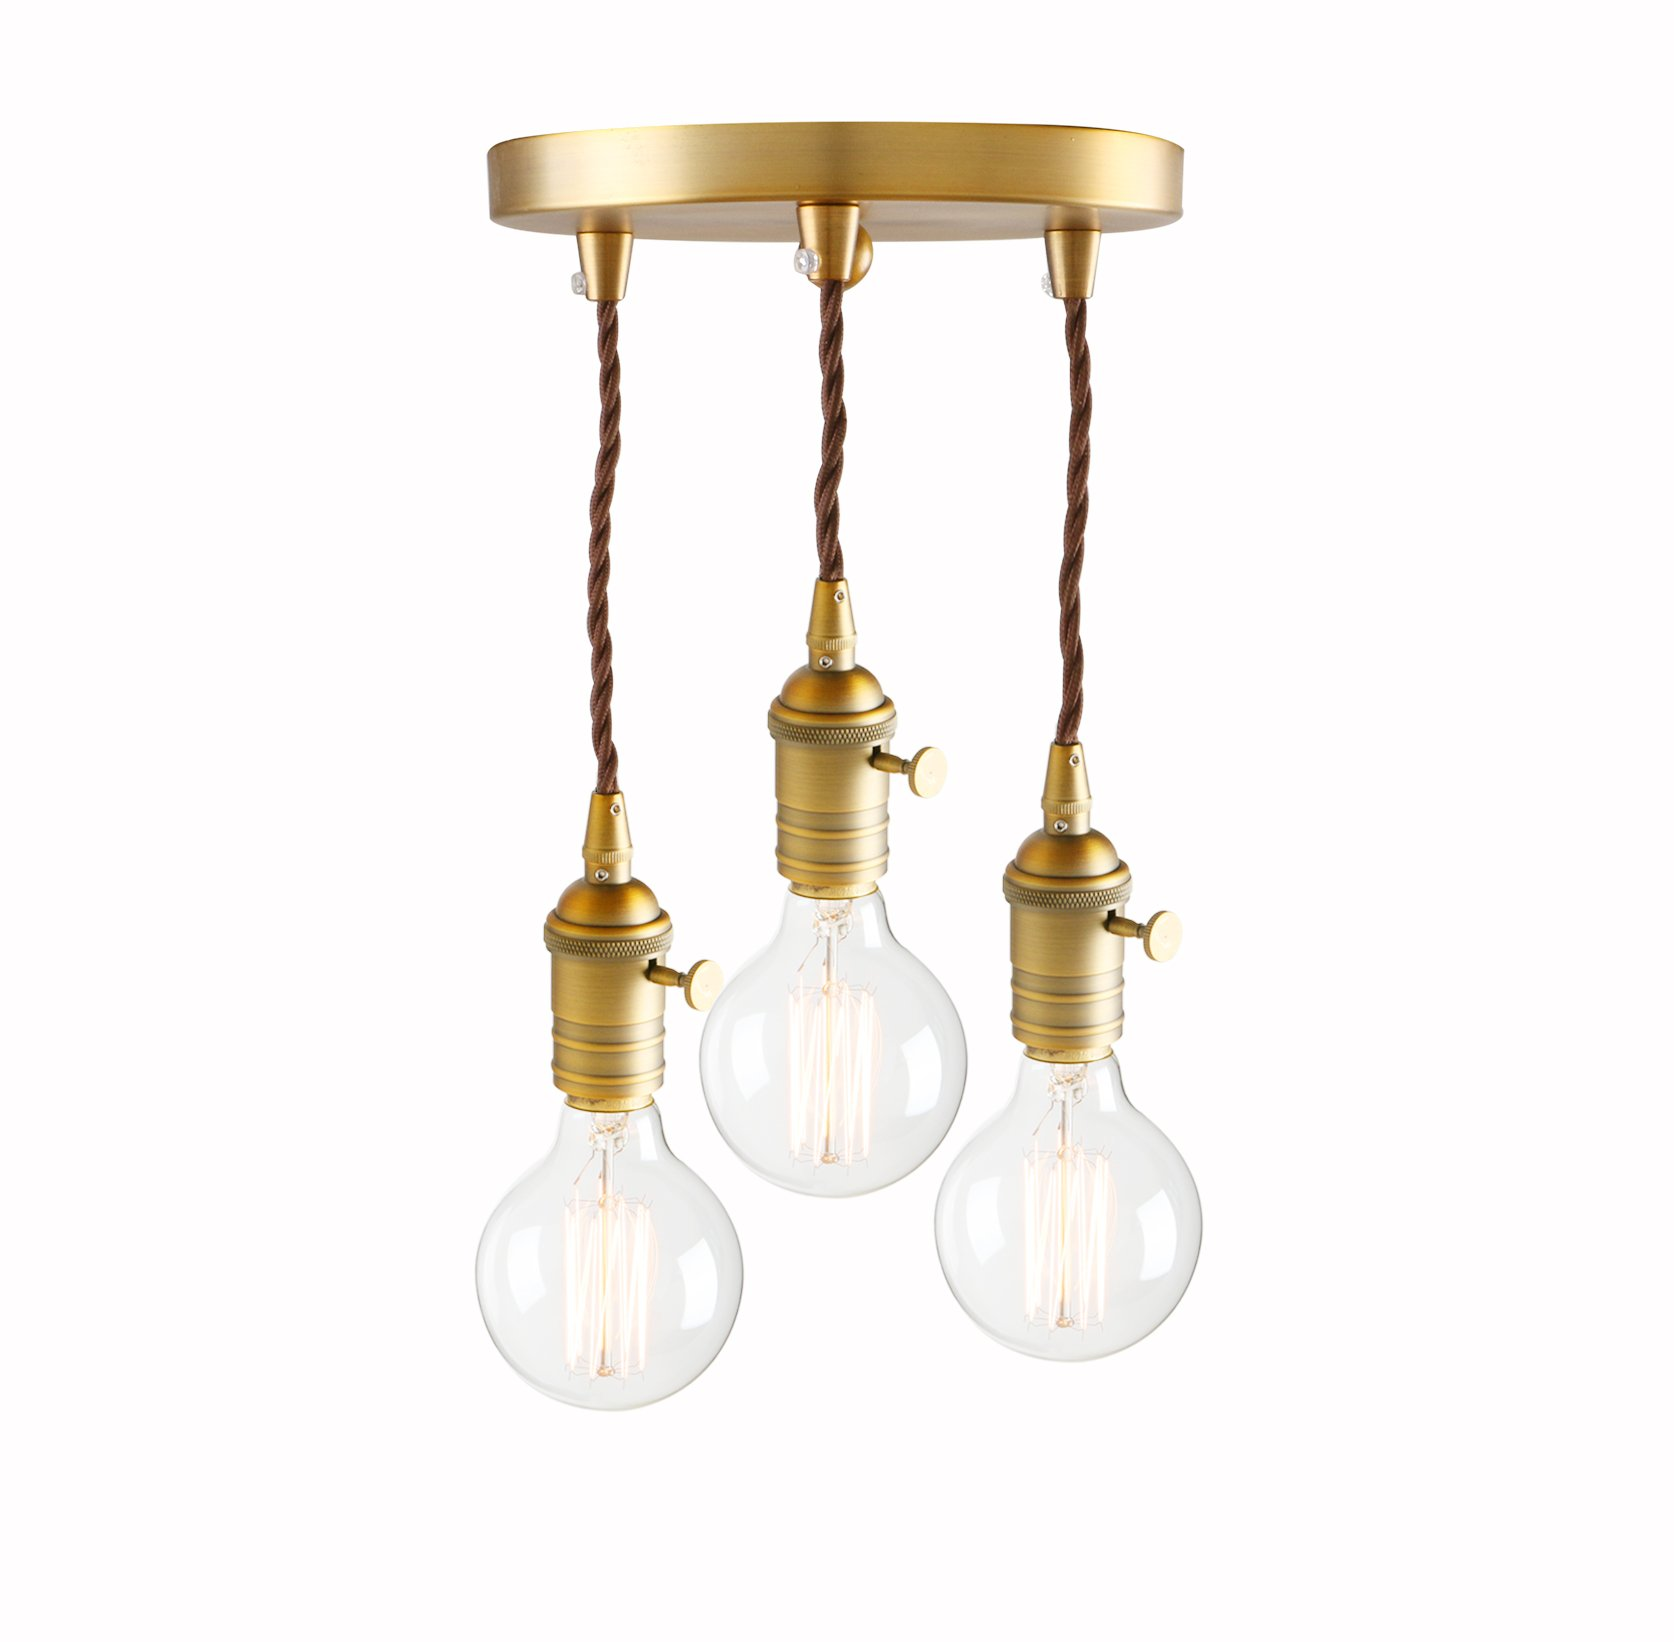 Pathson 3 Lights Industrial Mini Pendant Lighting, Vintage Simple Home Ceiling Light Fixture Flush Mount with Adjustable Textile Cord Pendant Cluster Light (Bulbs Not Included)